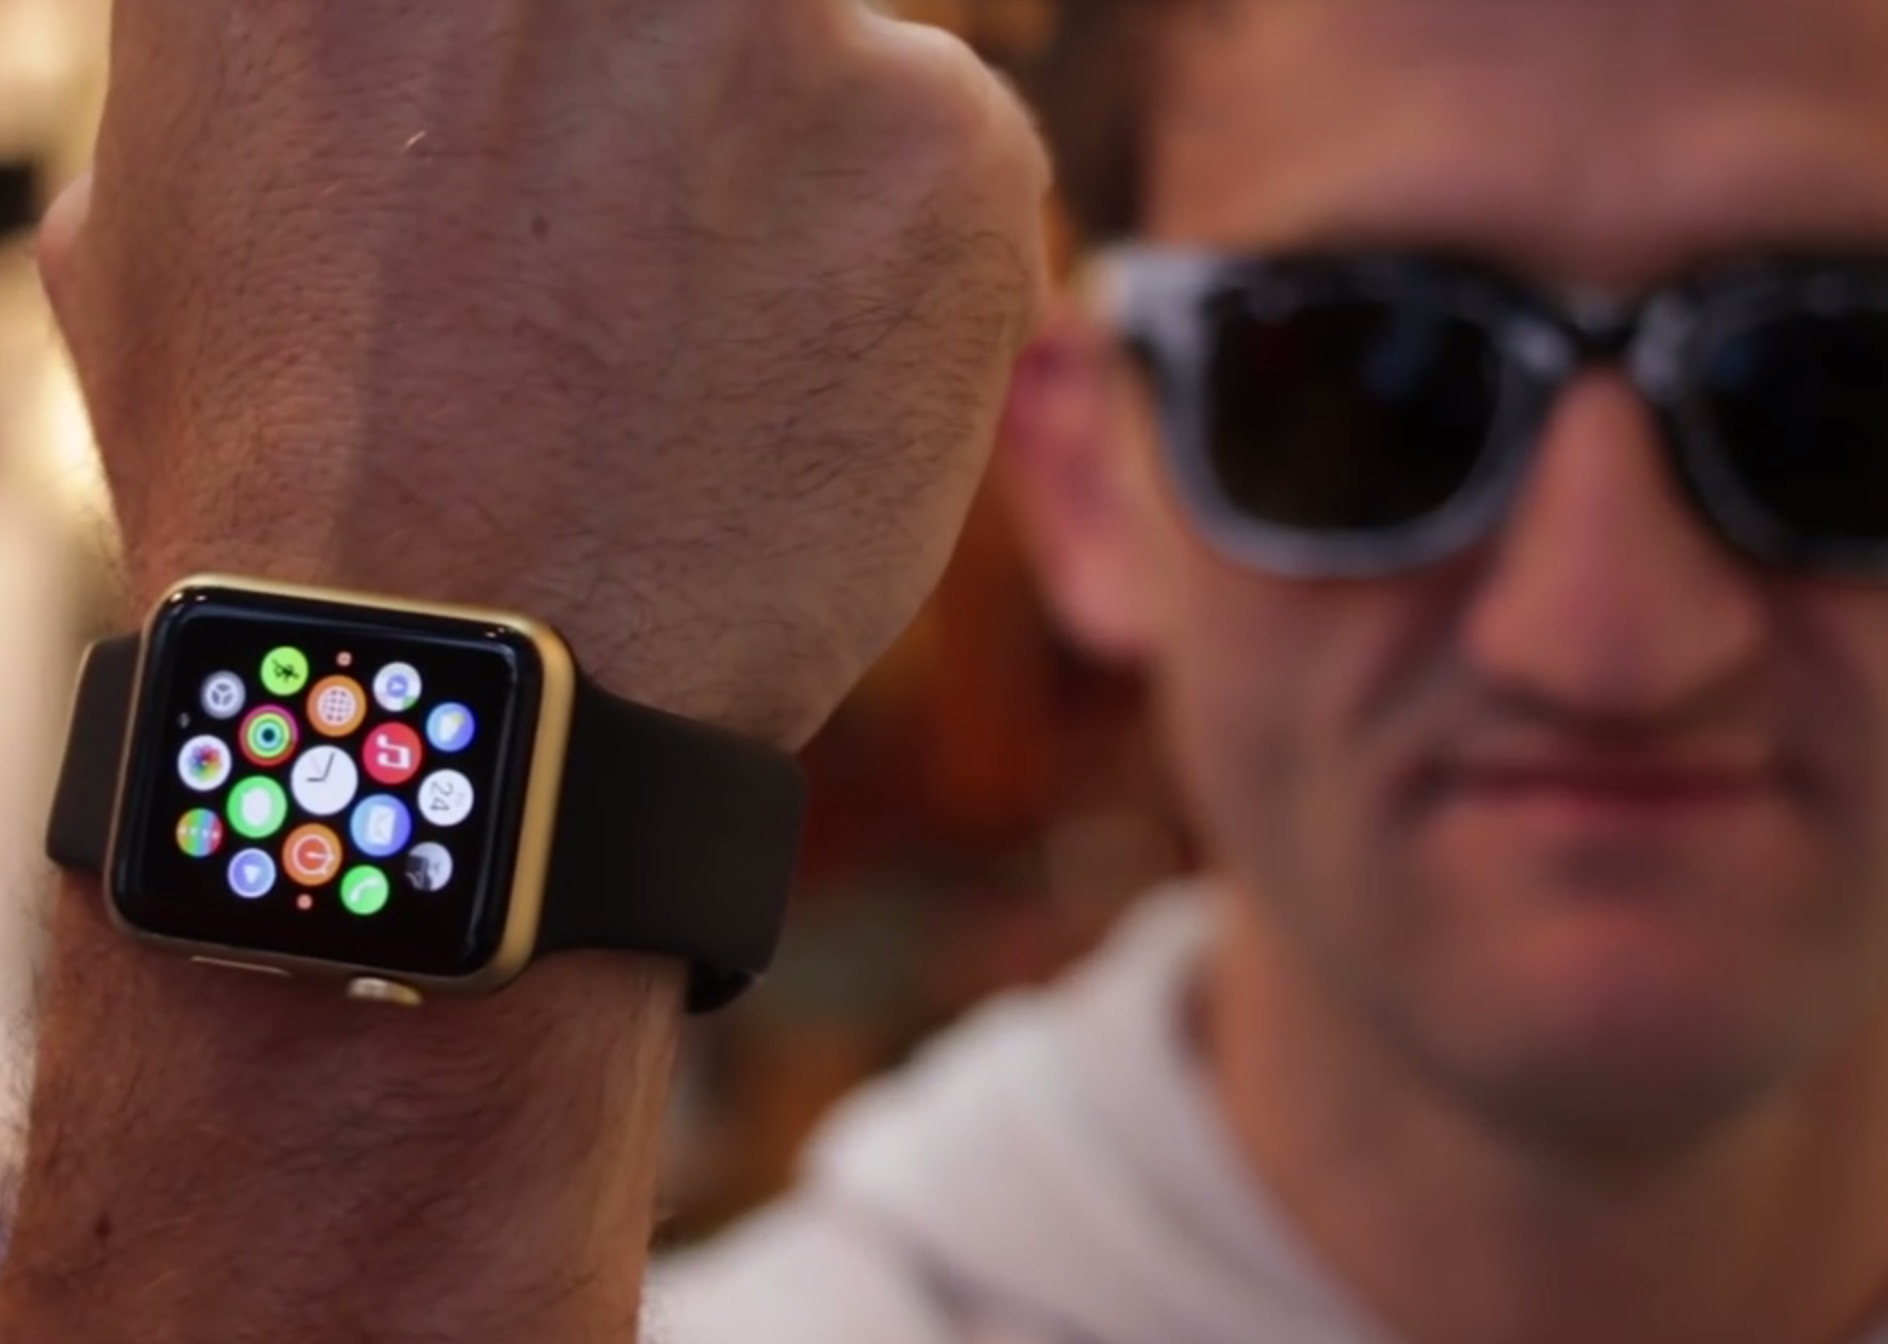 Gold Apple Watch Edition, well, sort of... thanks to spray paint